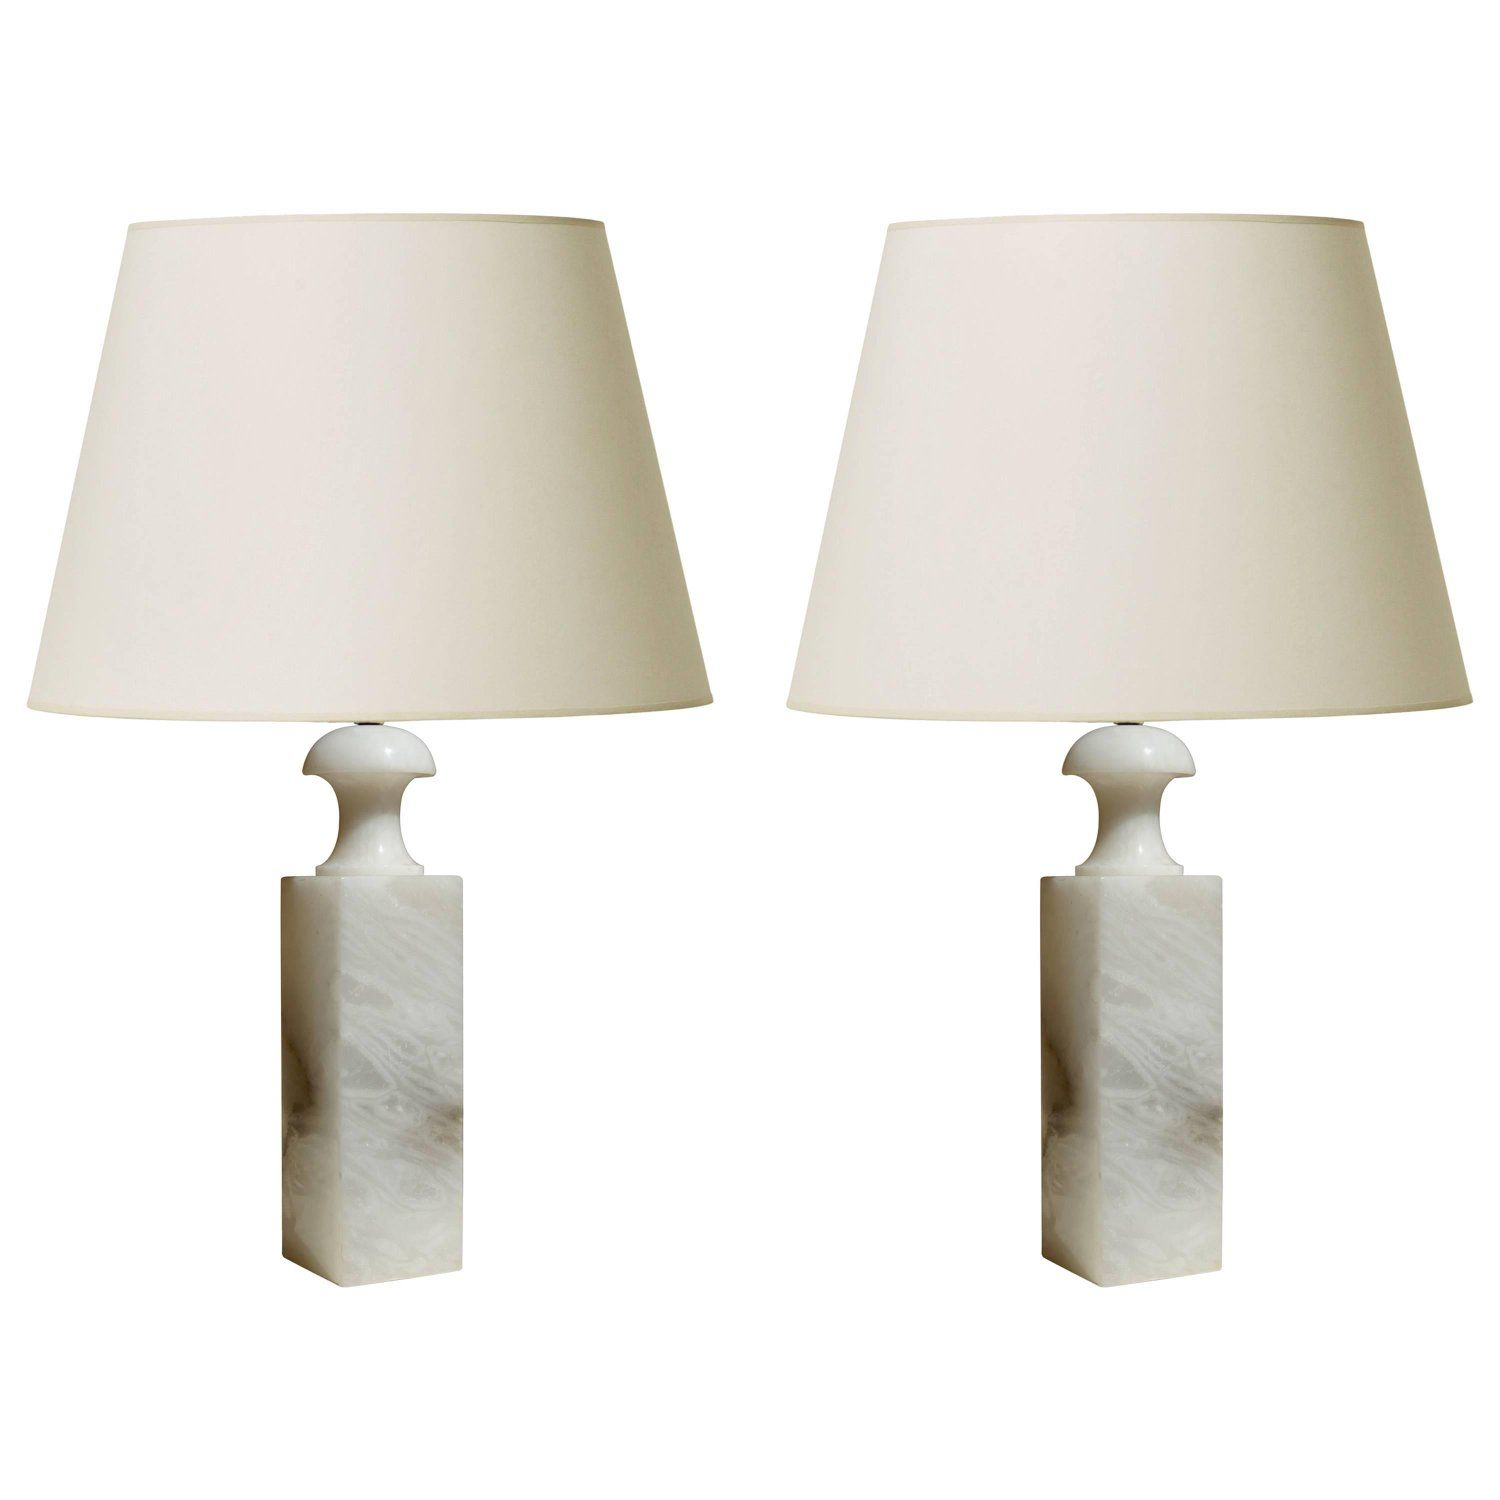 Pair Of Table Lamps With Tall Baluster Form In Alabaster By Bergboms Lamp Table Lamp Vintage Table Lamp